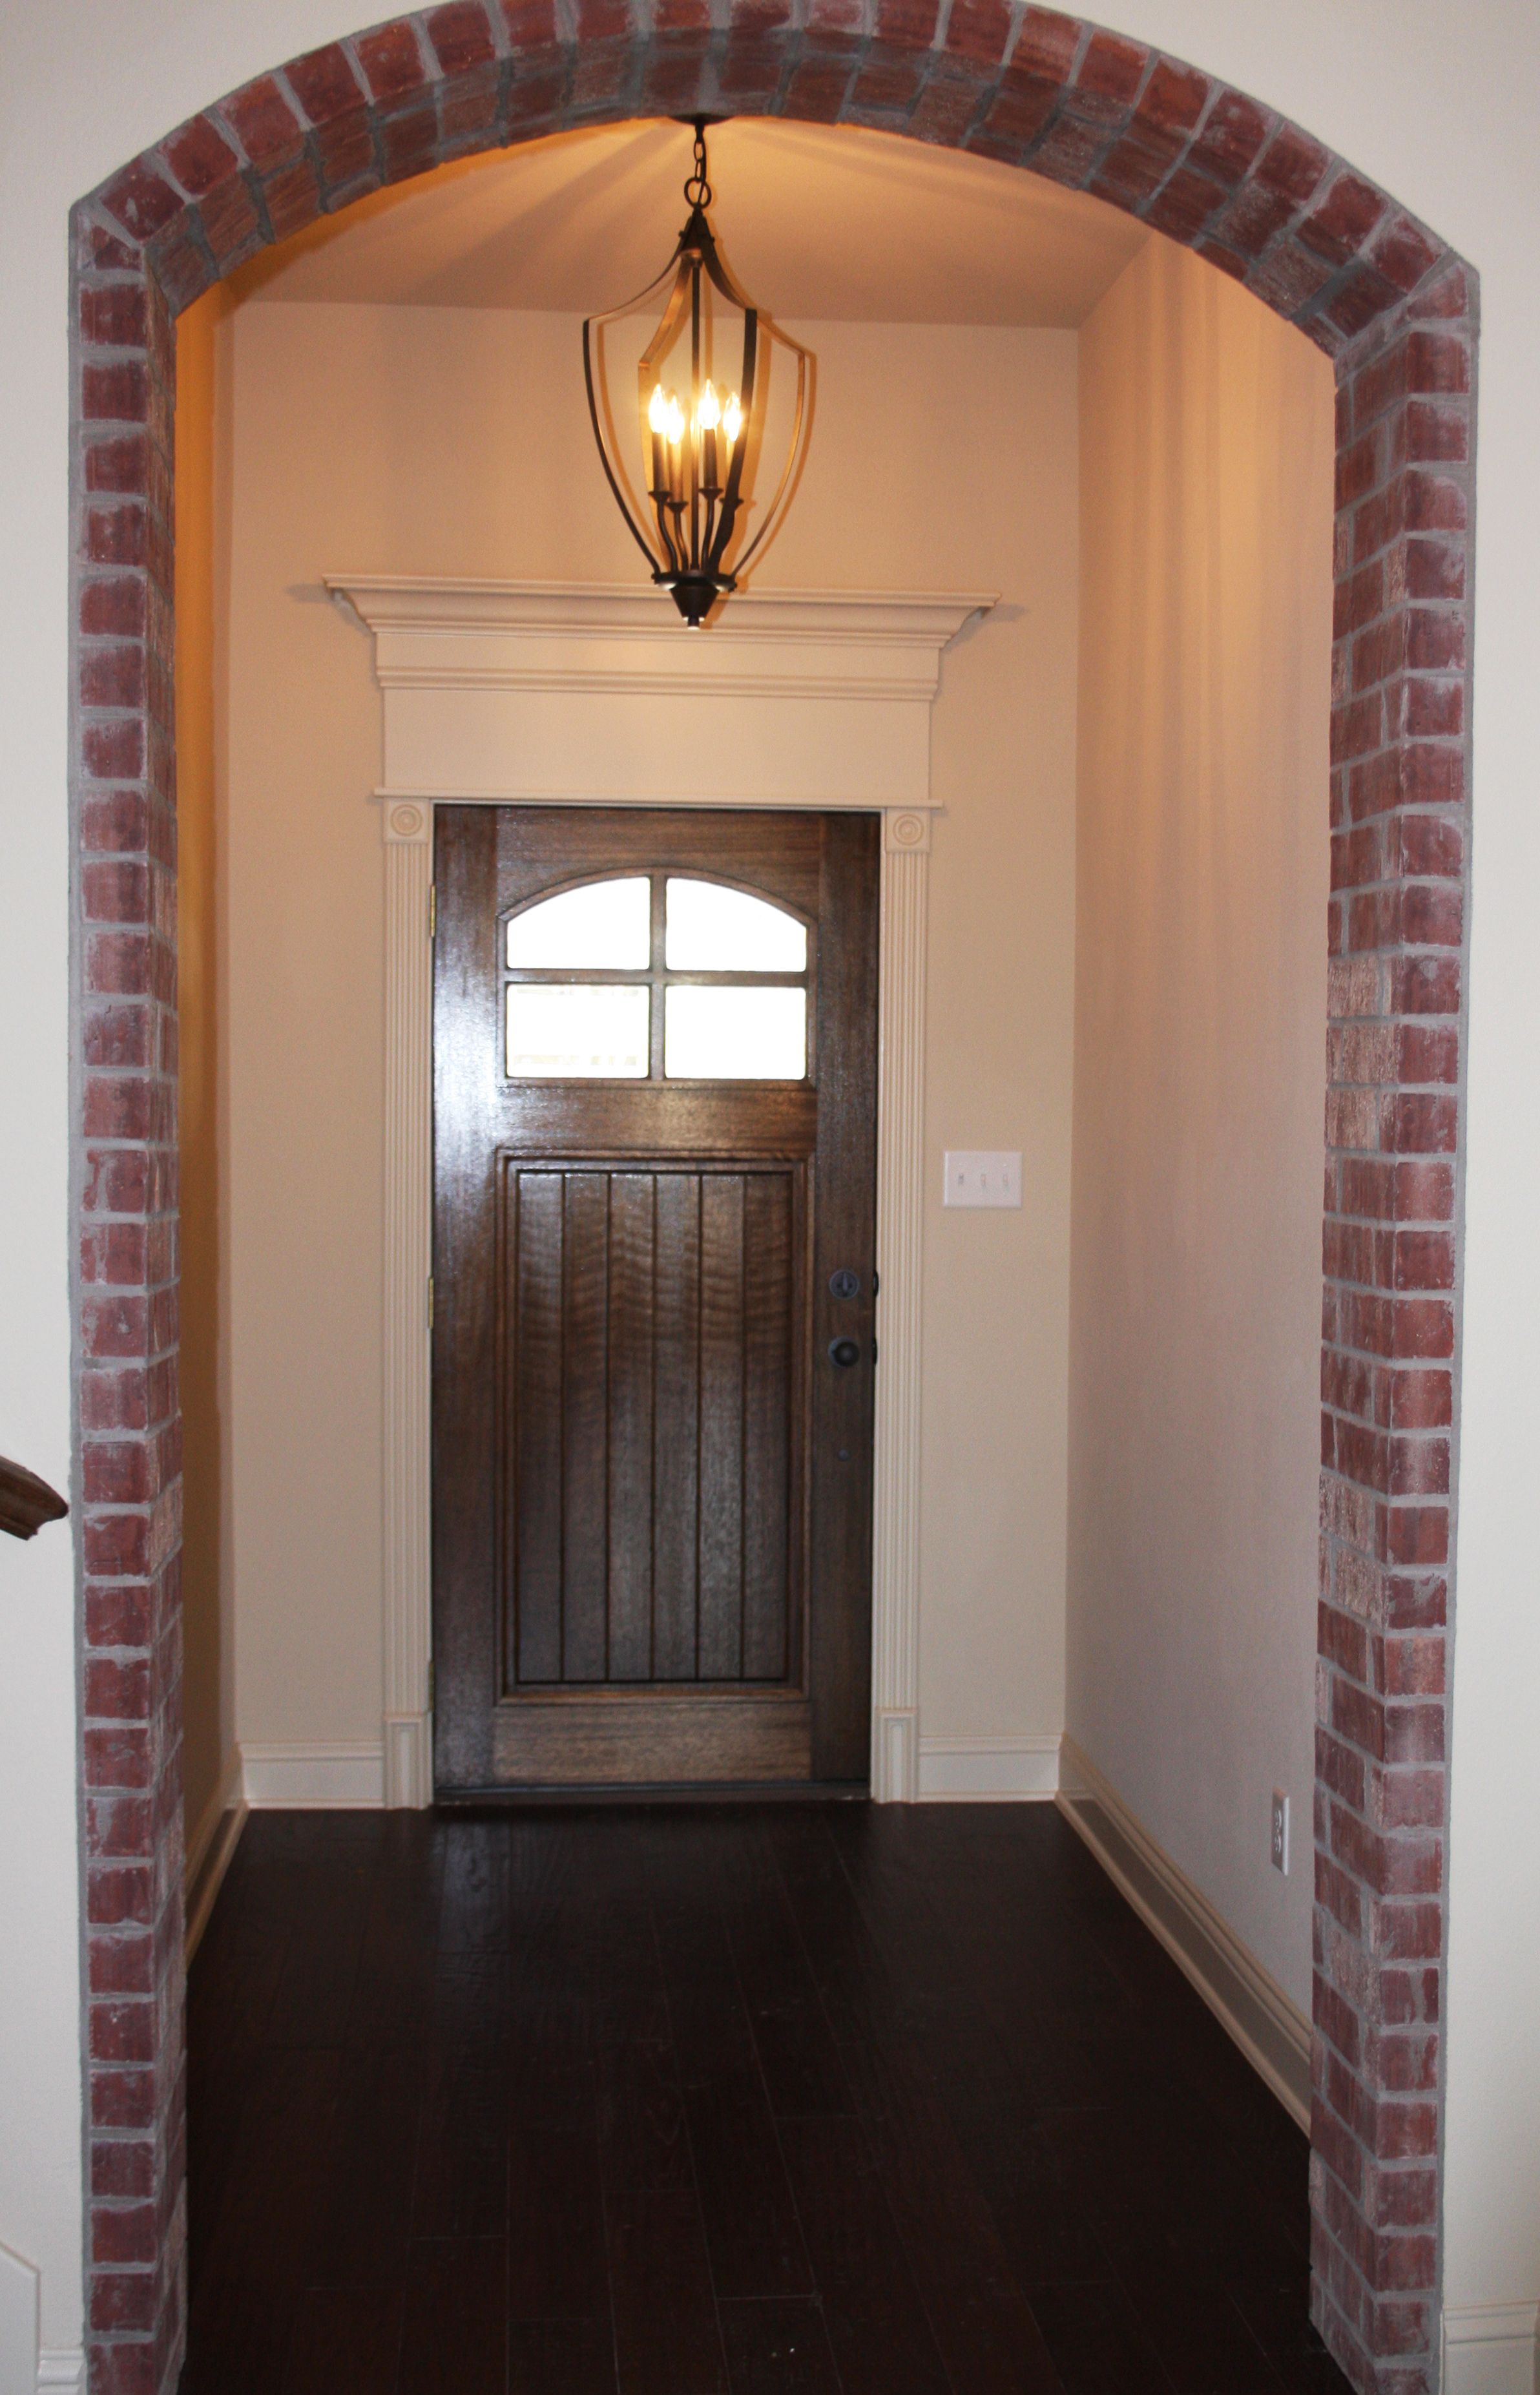 Exposed Brick Archway. & Clarity Homes. Better Things. Exposed Brick Archway. | Clarity ... pezcame.com